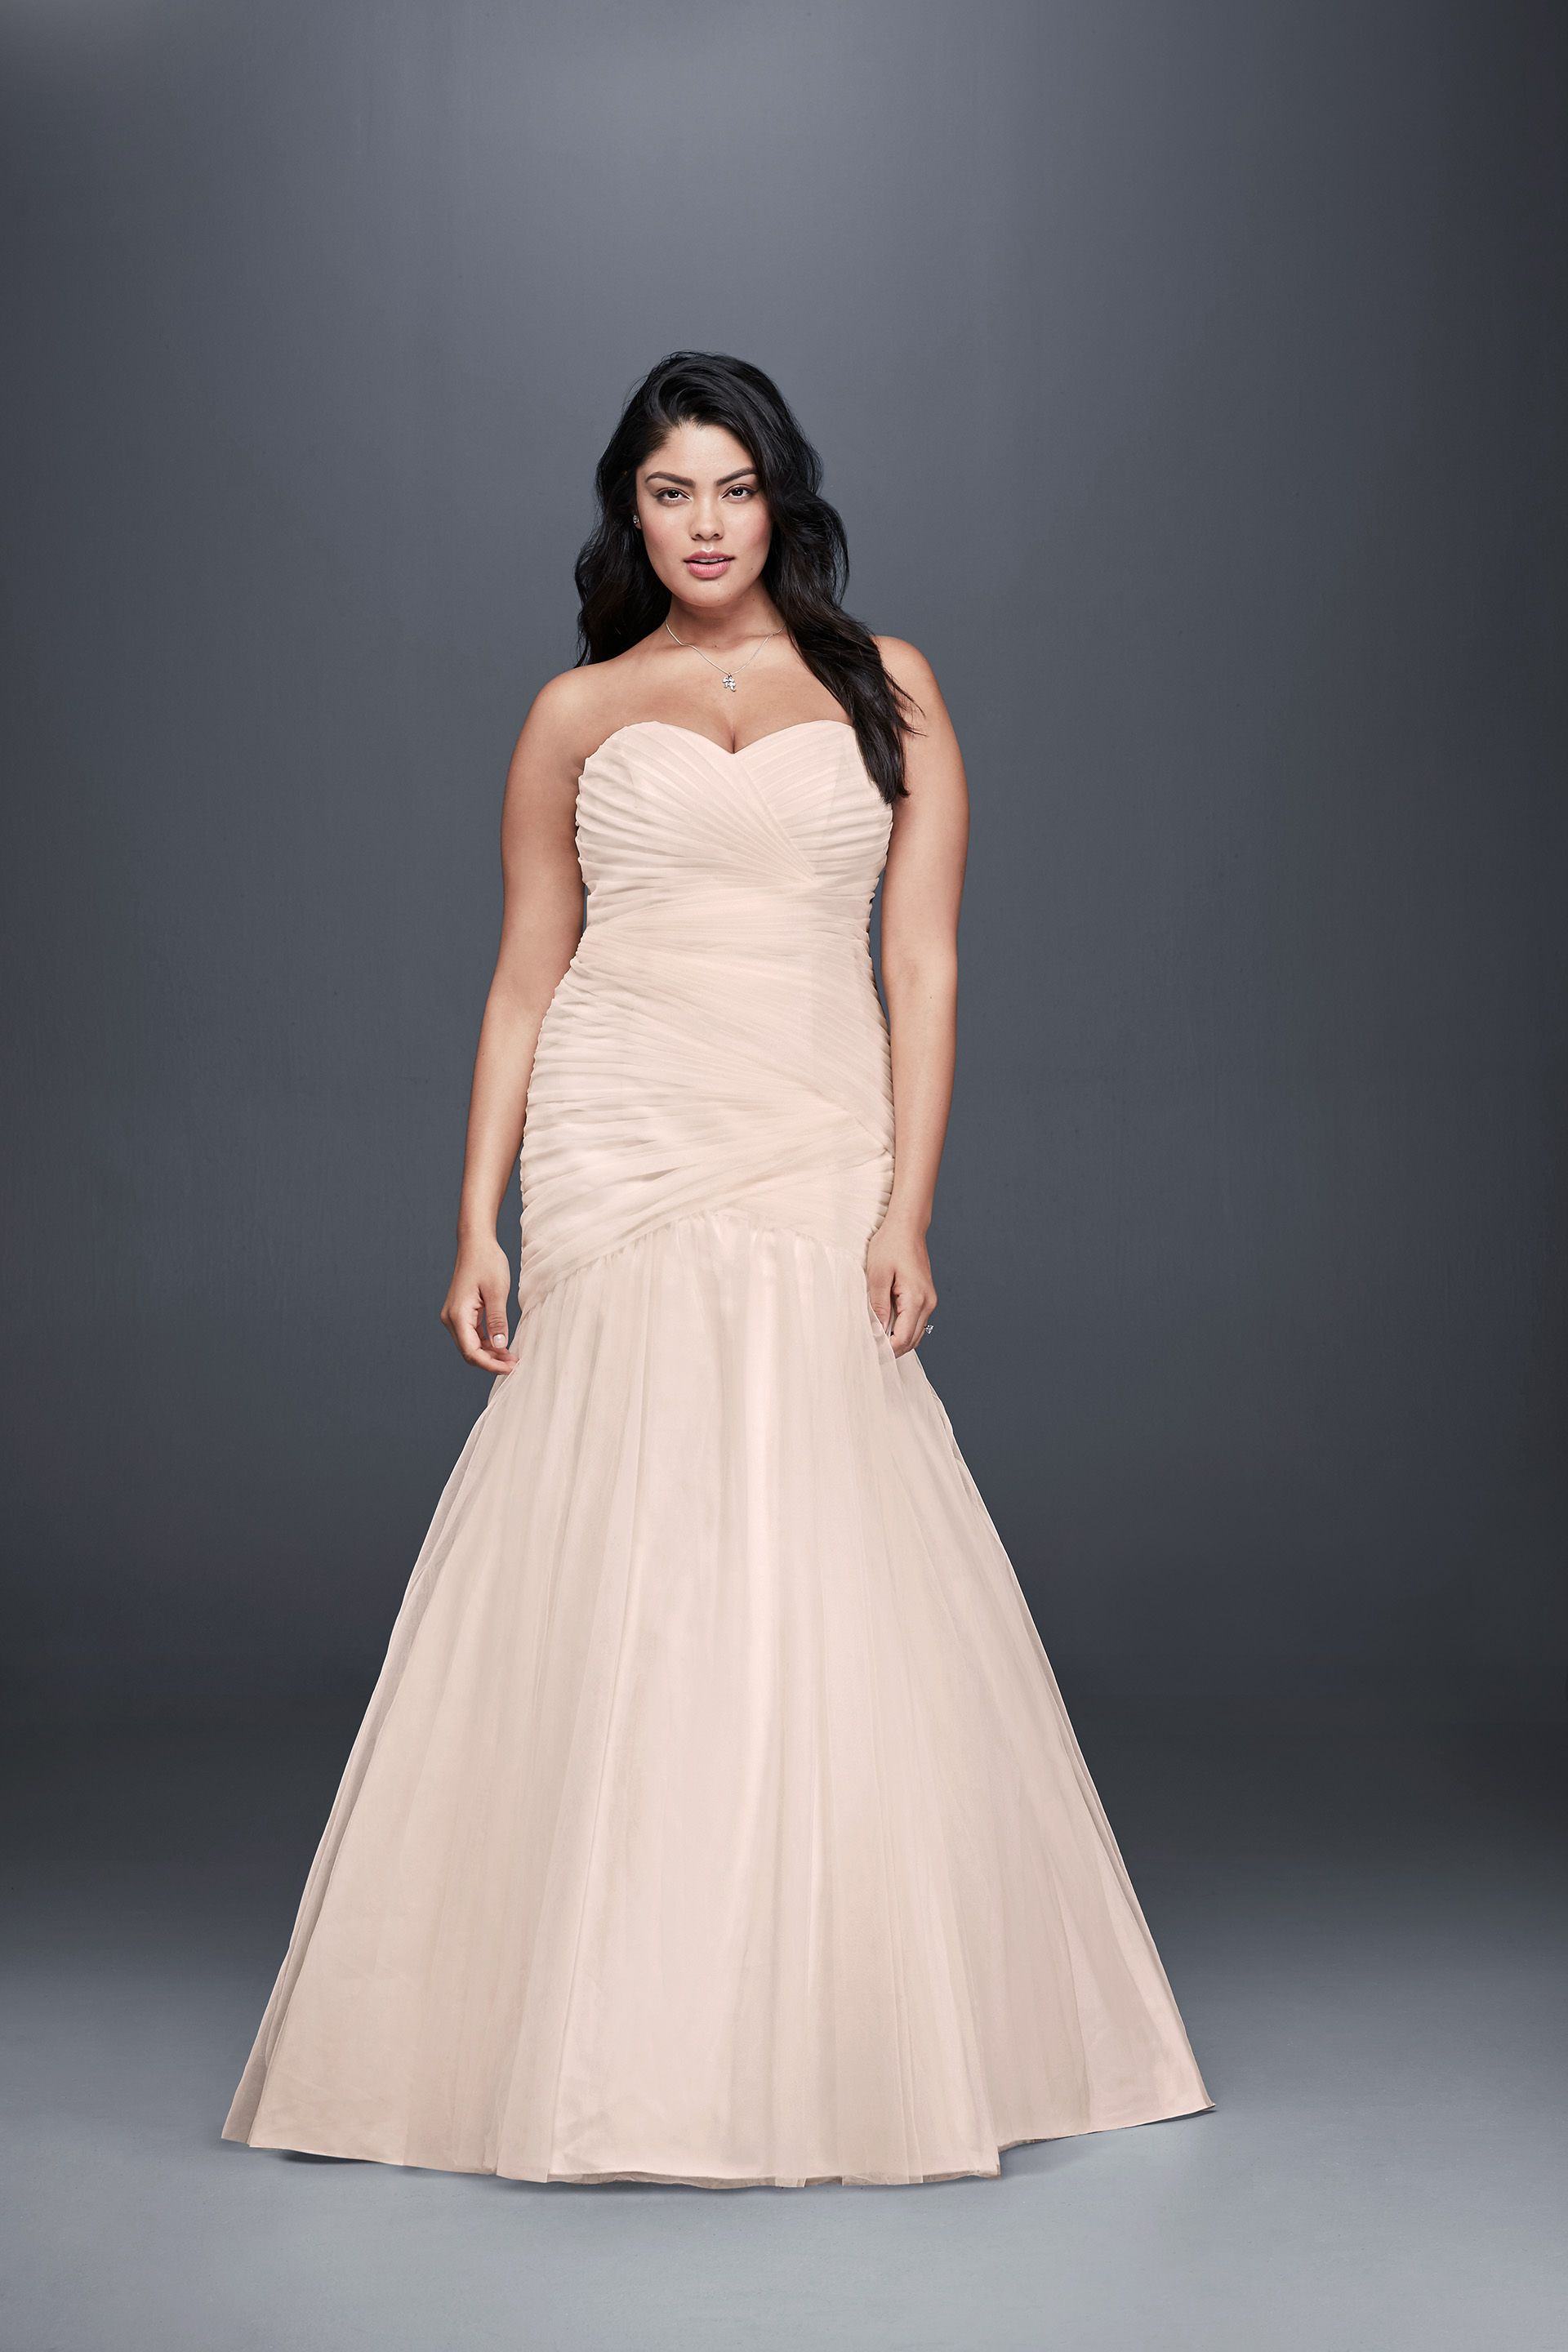 Strapless Tulle Plus Size Blush Wedding Dress Mermaid Silhouette By Davids Bridal Collection